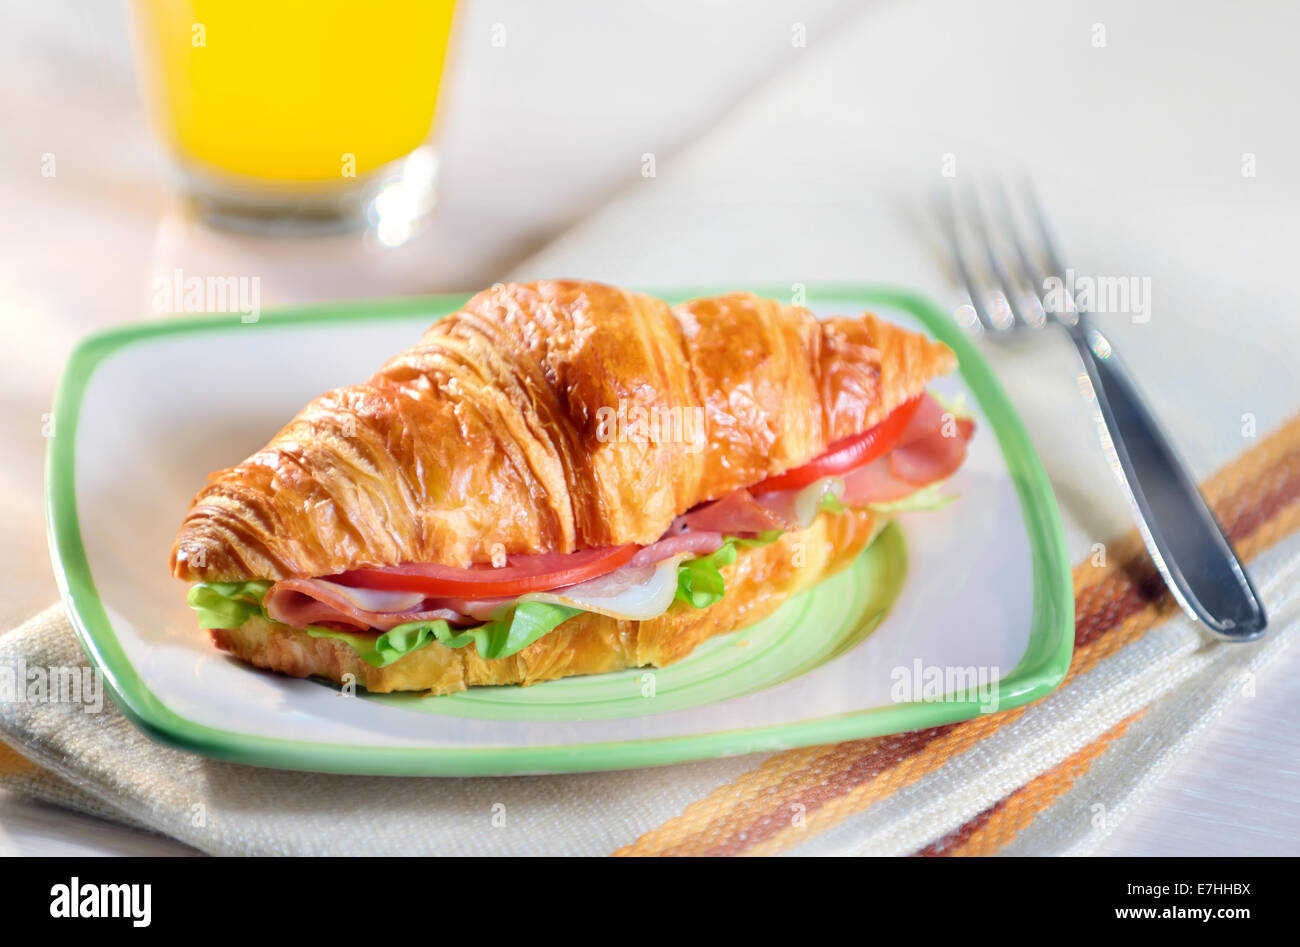 croissant sandwich with ham and vegetables - Stock Image